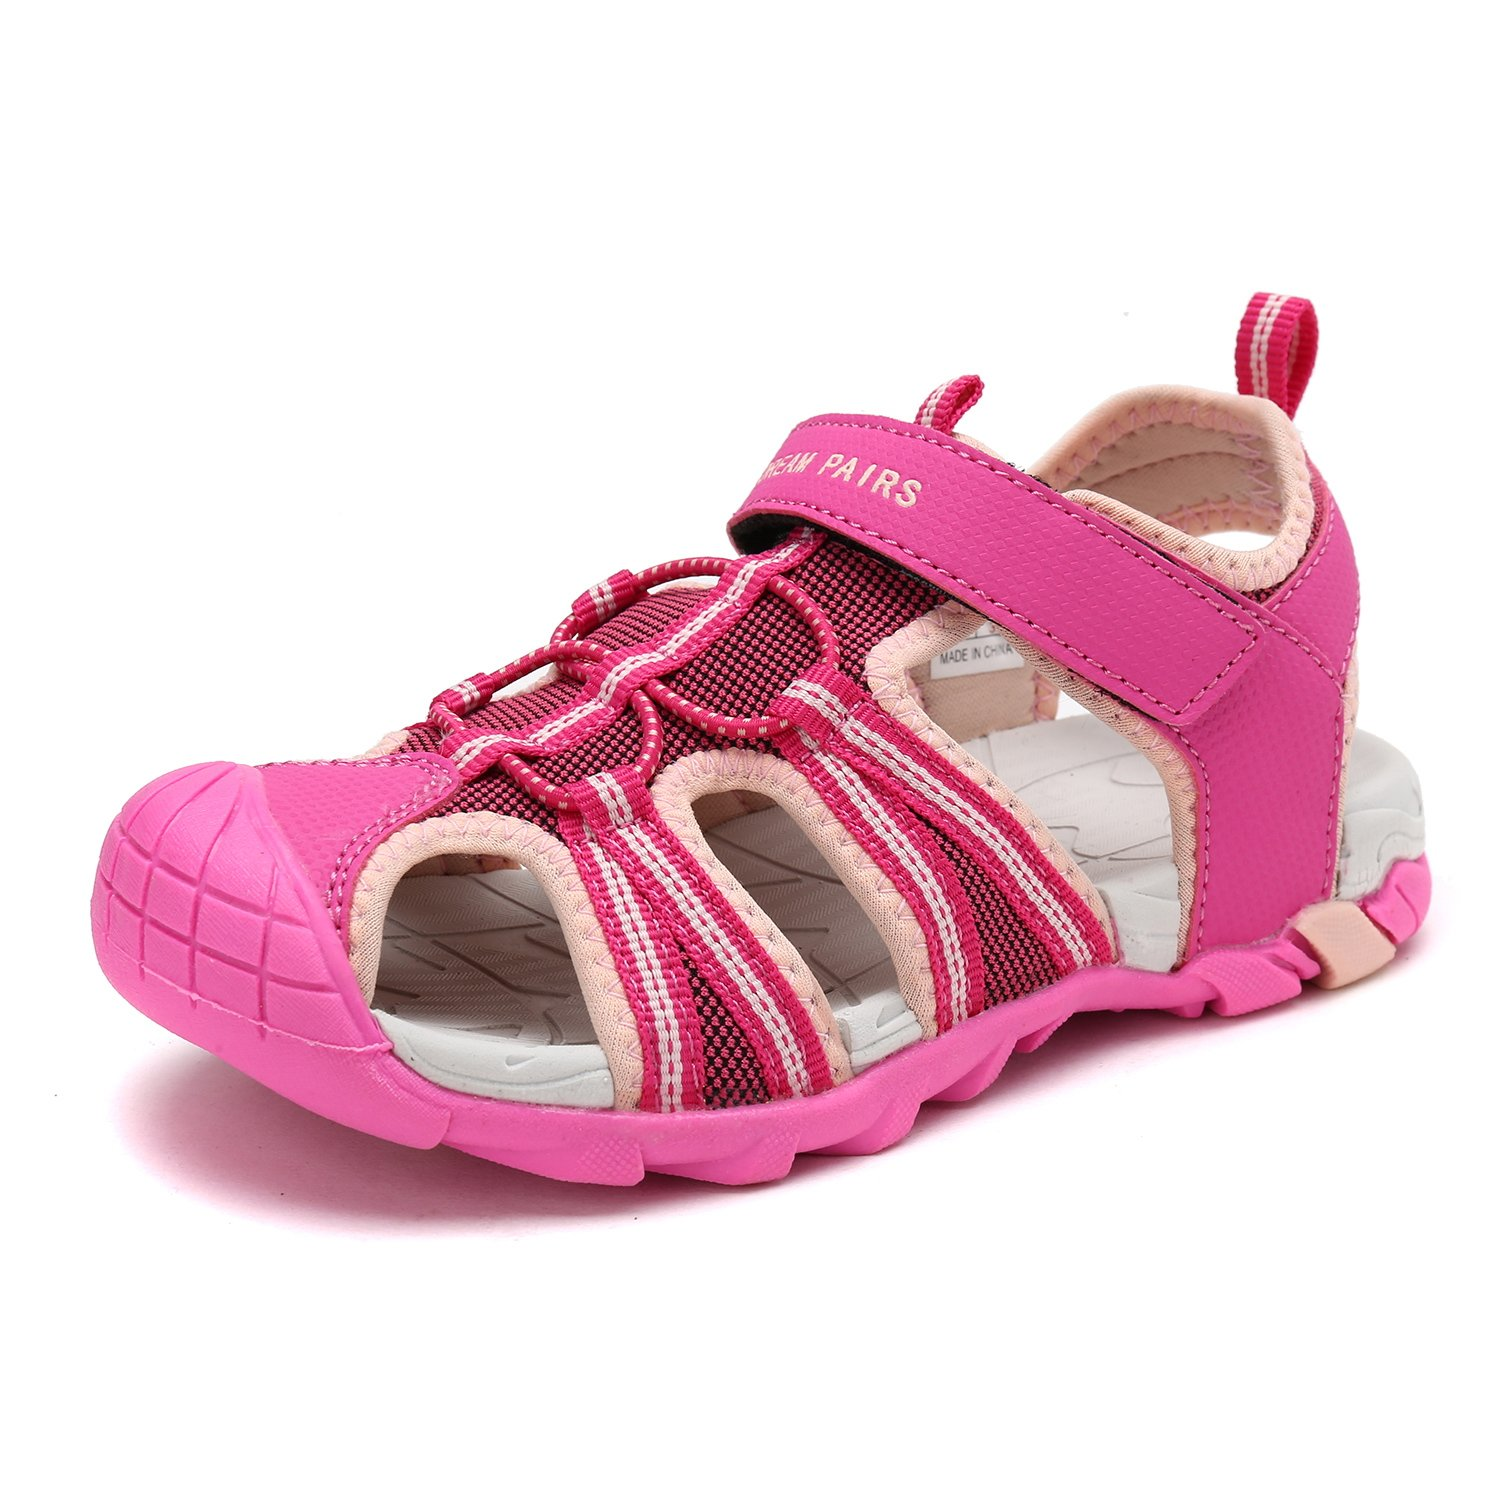 DREAM PAIRS Toddler 170813-K Fuchsia Shell Pink Outdoor Summer Sandals Size 10 M US Toddler by DREAM PAIRS